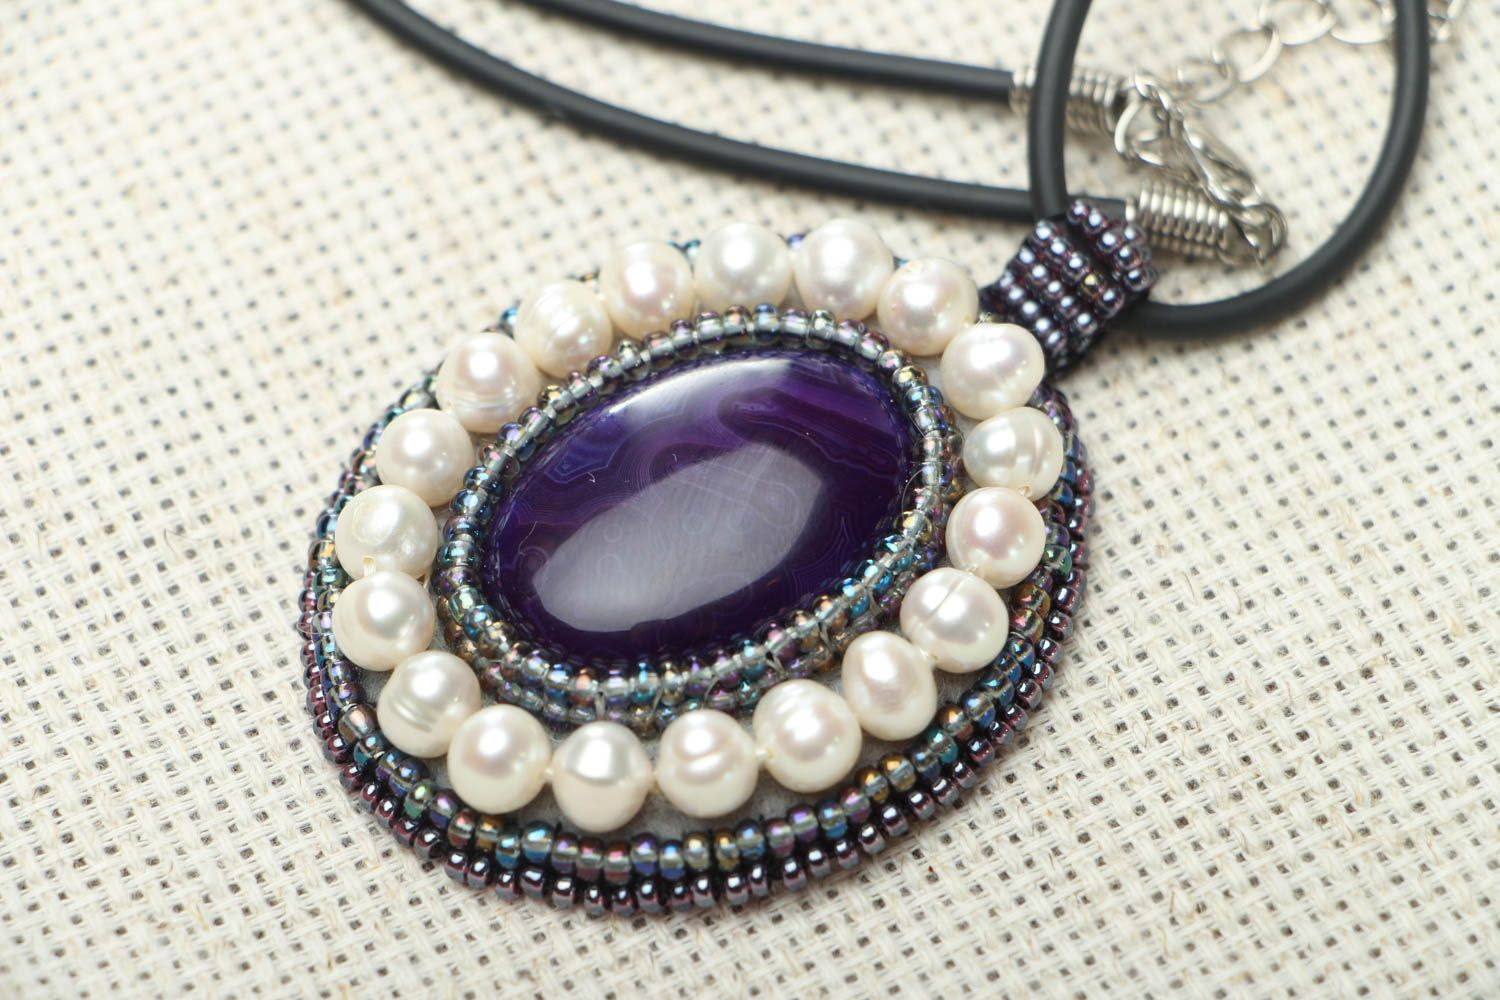 Homemade pendant with amethyst and pearls photo 2